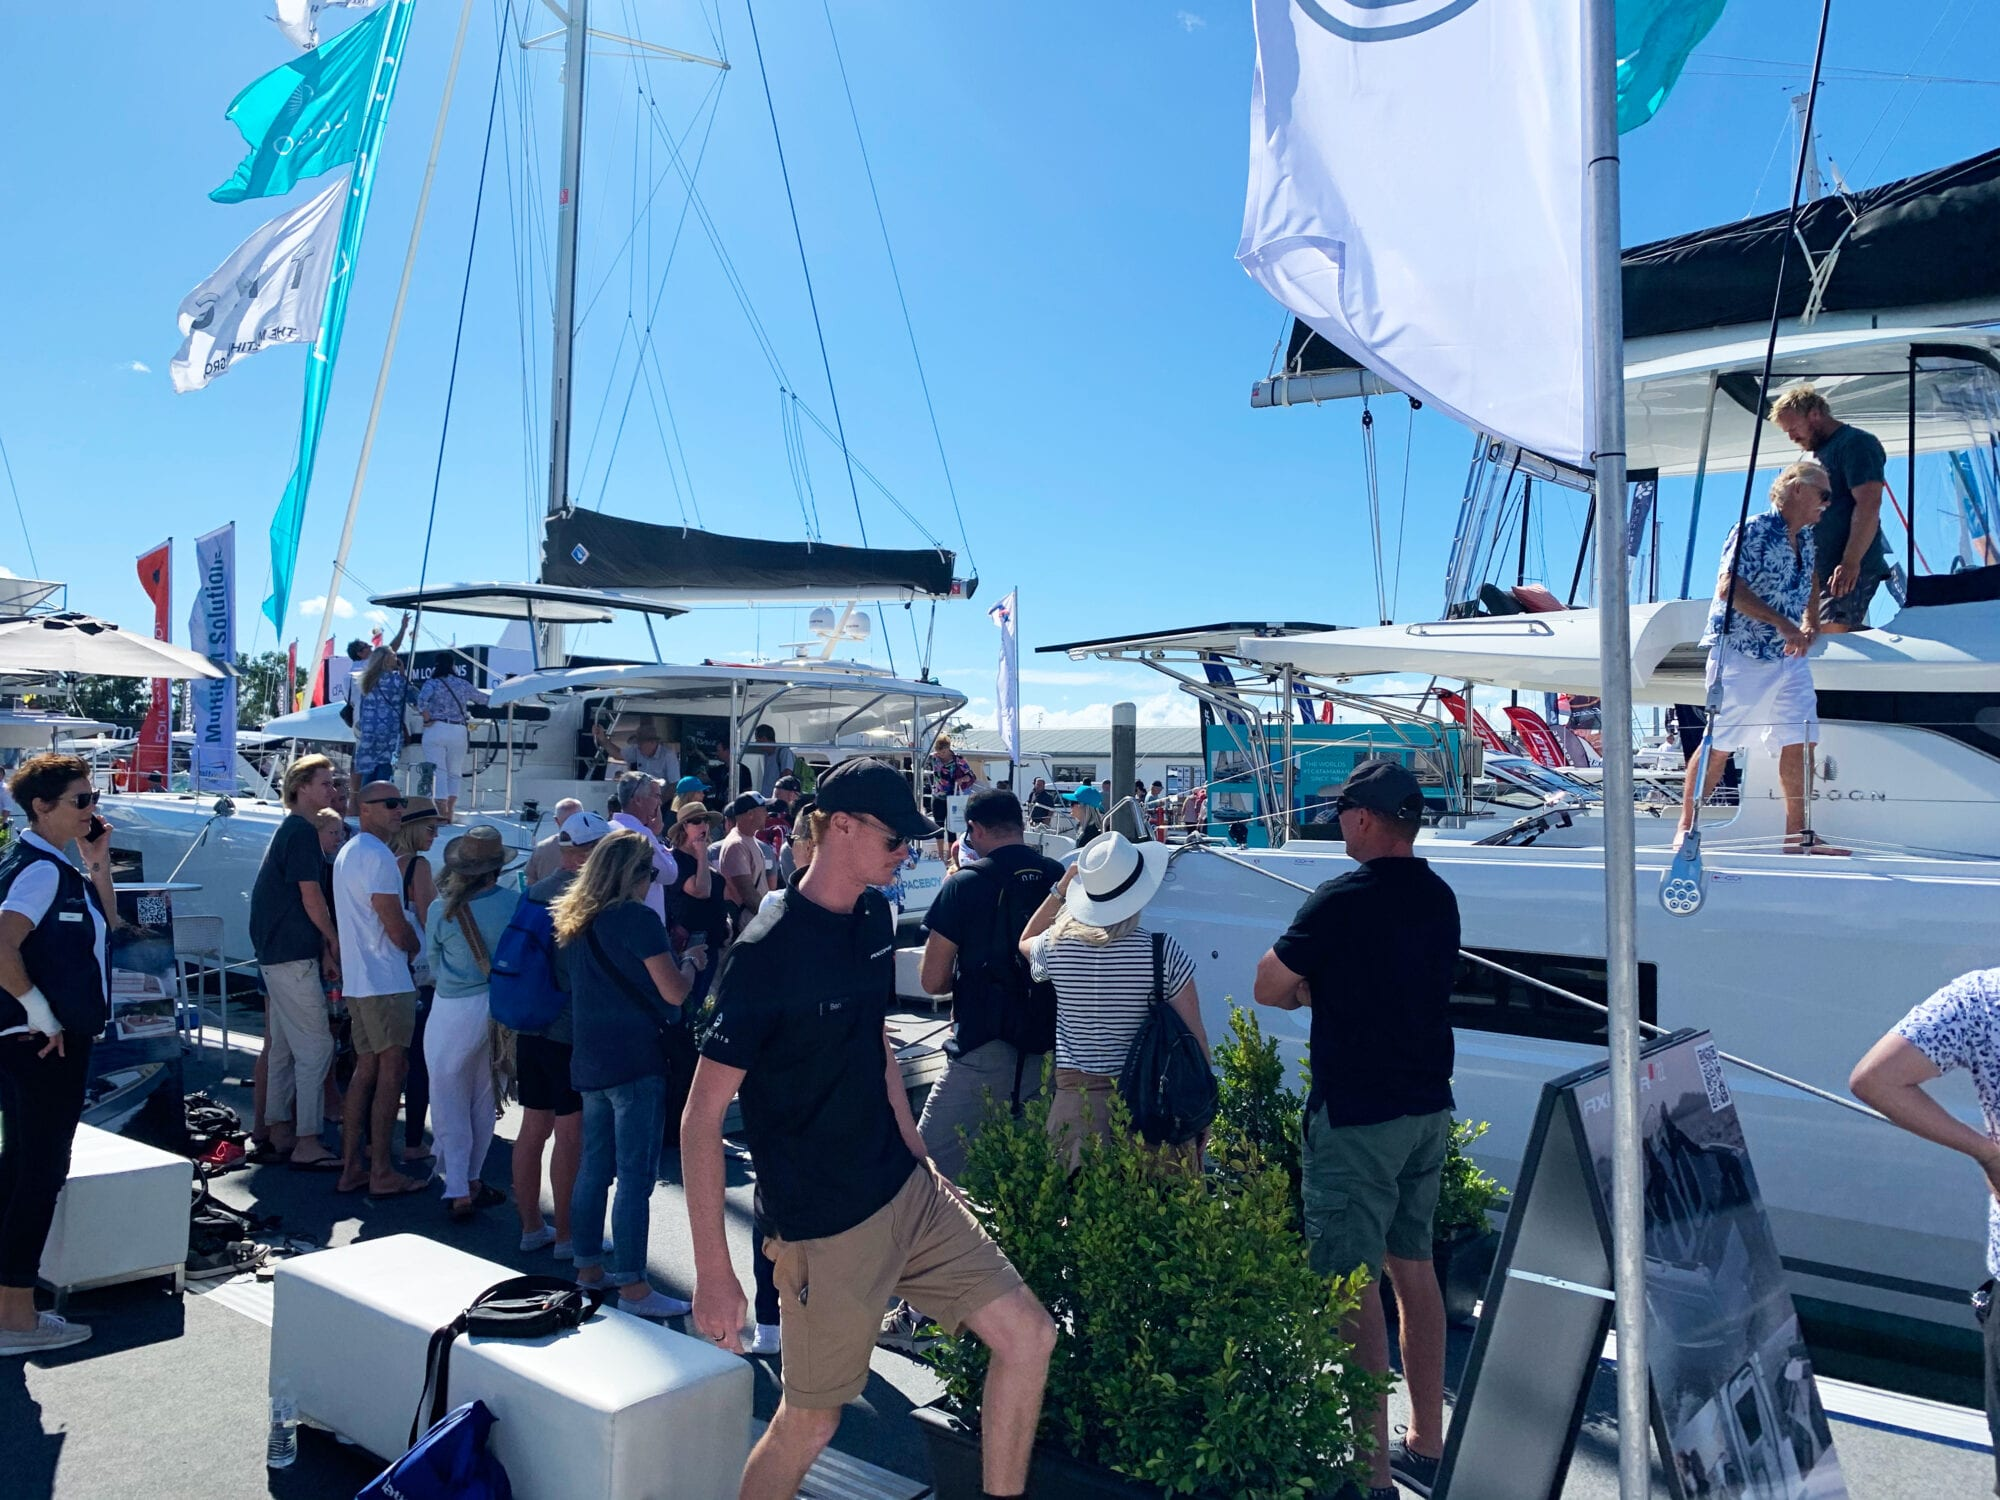 The Multihull Group stall at Sanctuary Cove with crowds of people